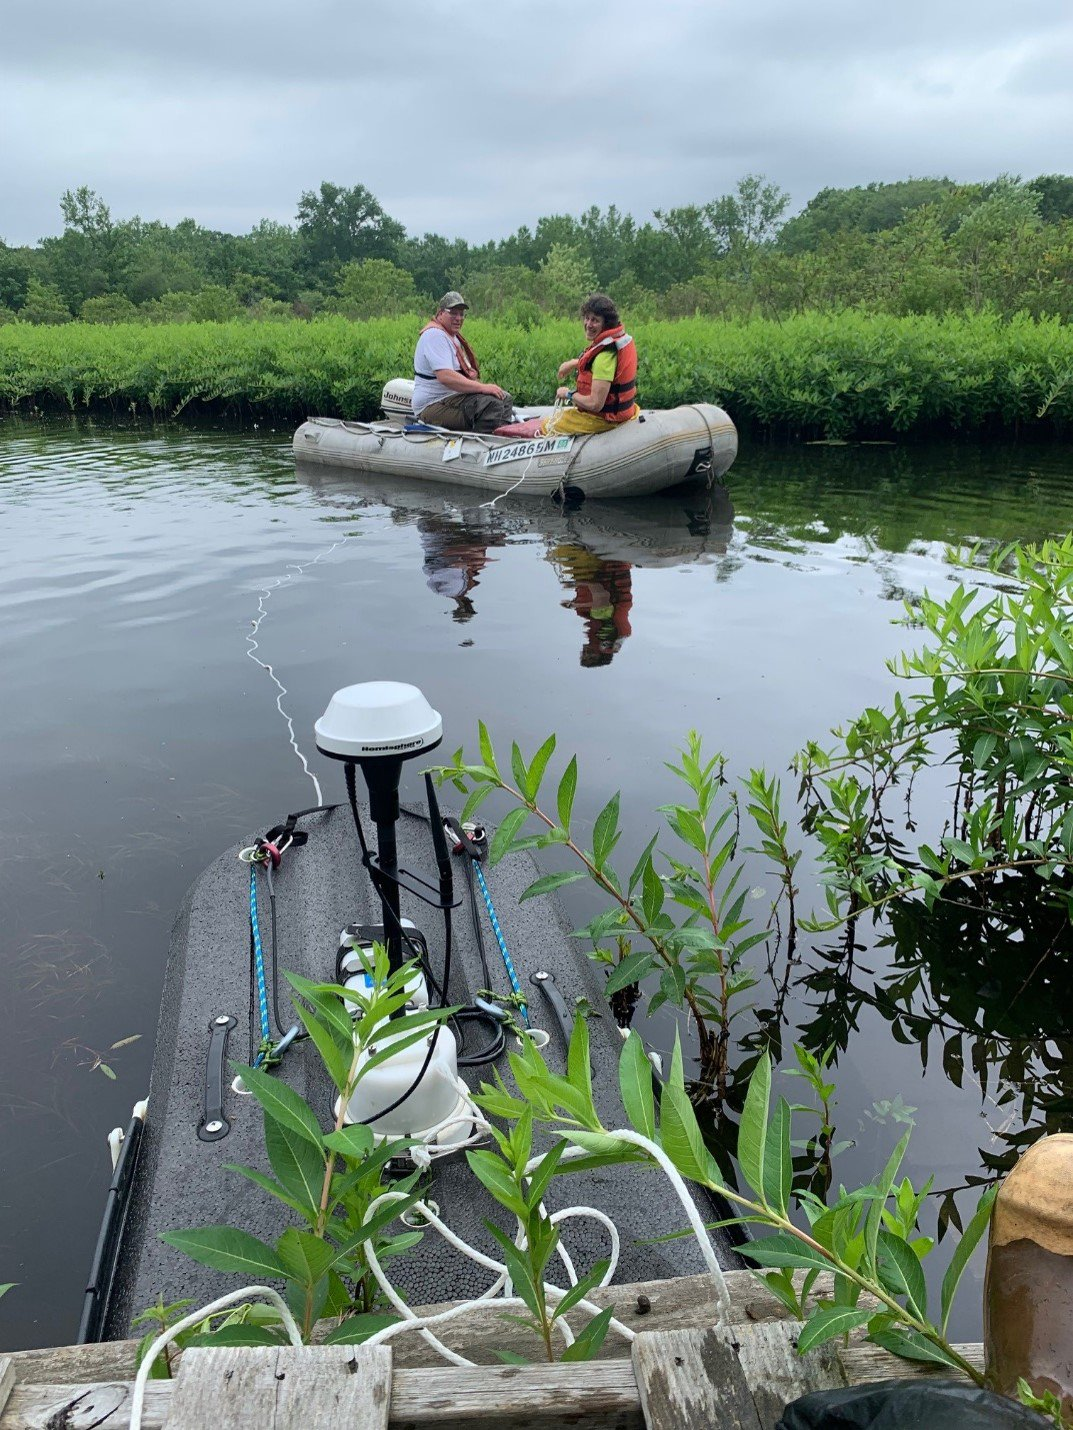 flow sampling equipment in one of the ponds - environmental consulting services firm